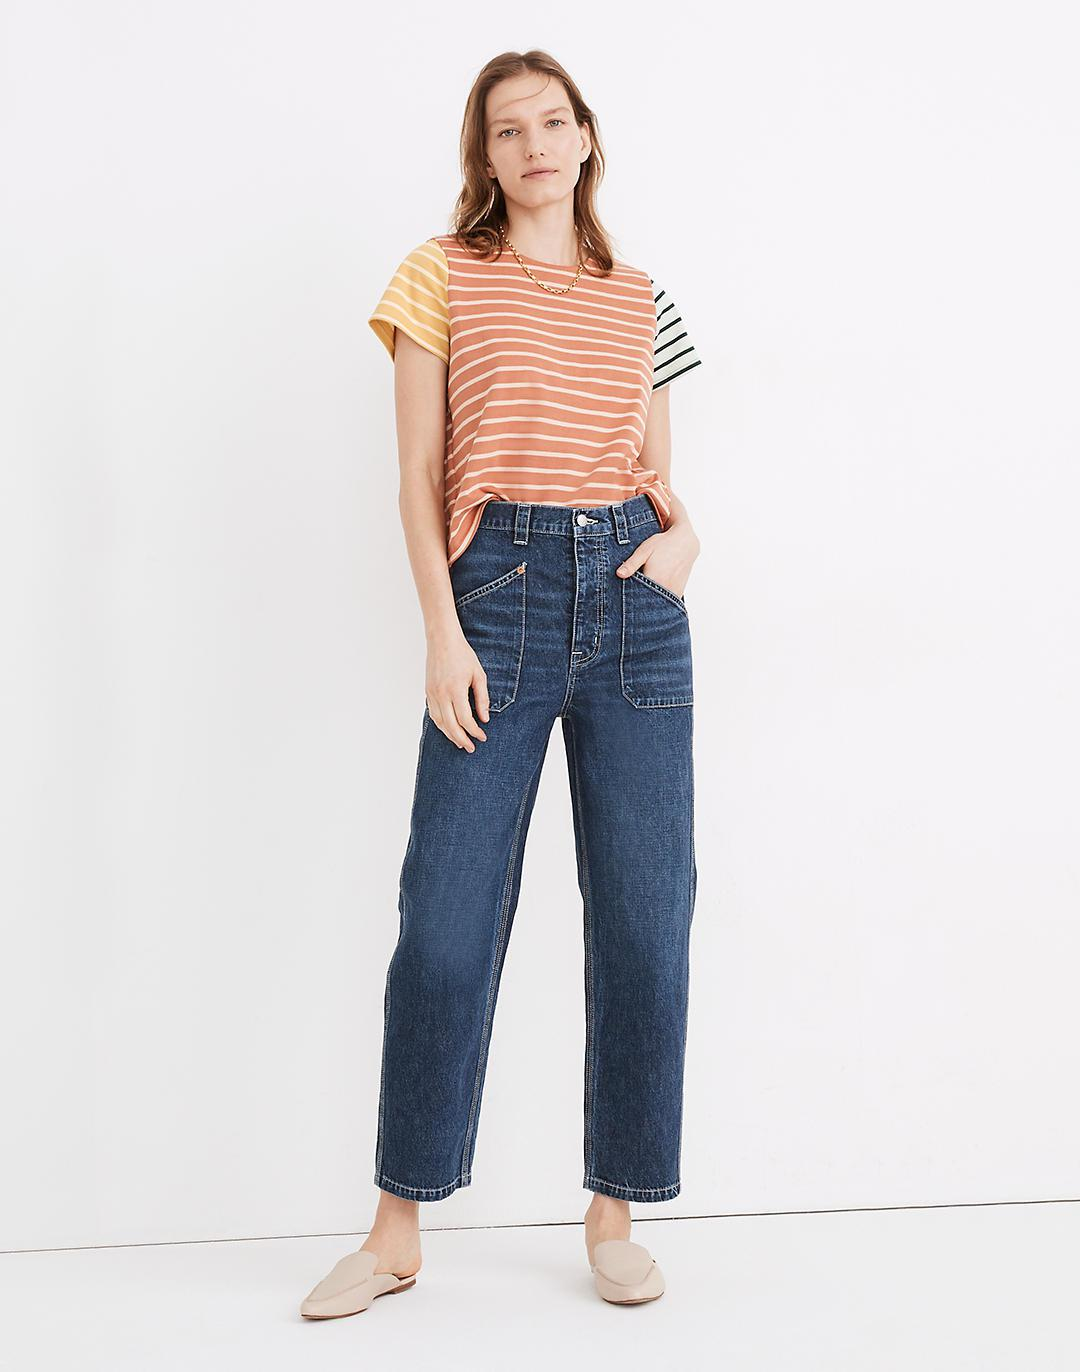 Rivet & Thread High-Rise Relaxed Straight Jeans in Fiske Wash